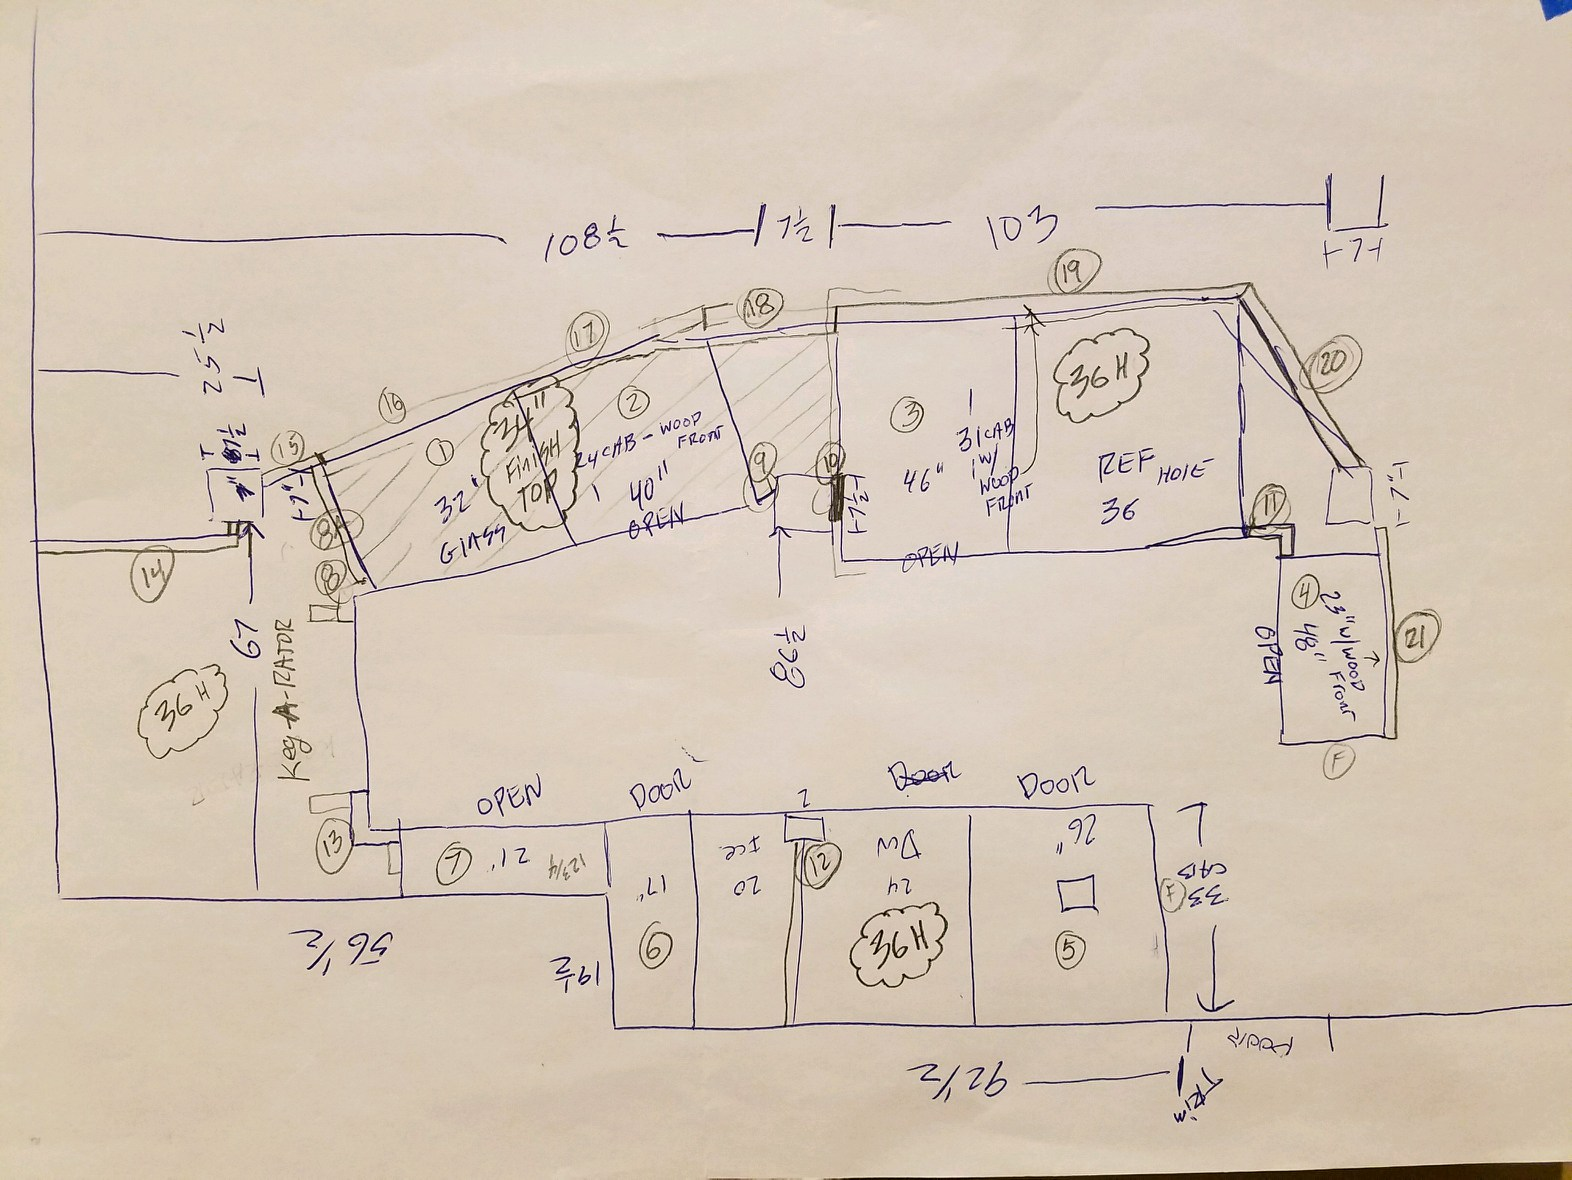 -Hand drawn plans for a cafe